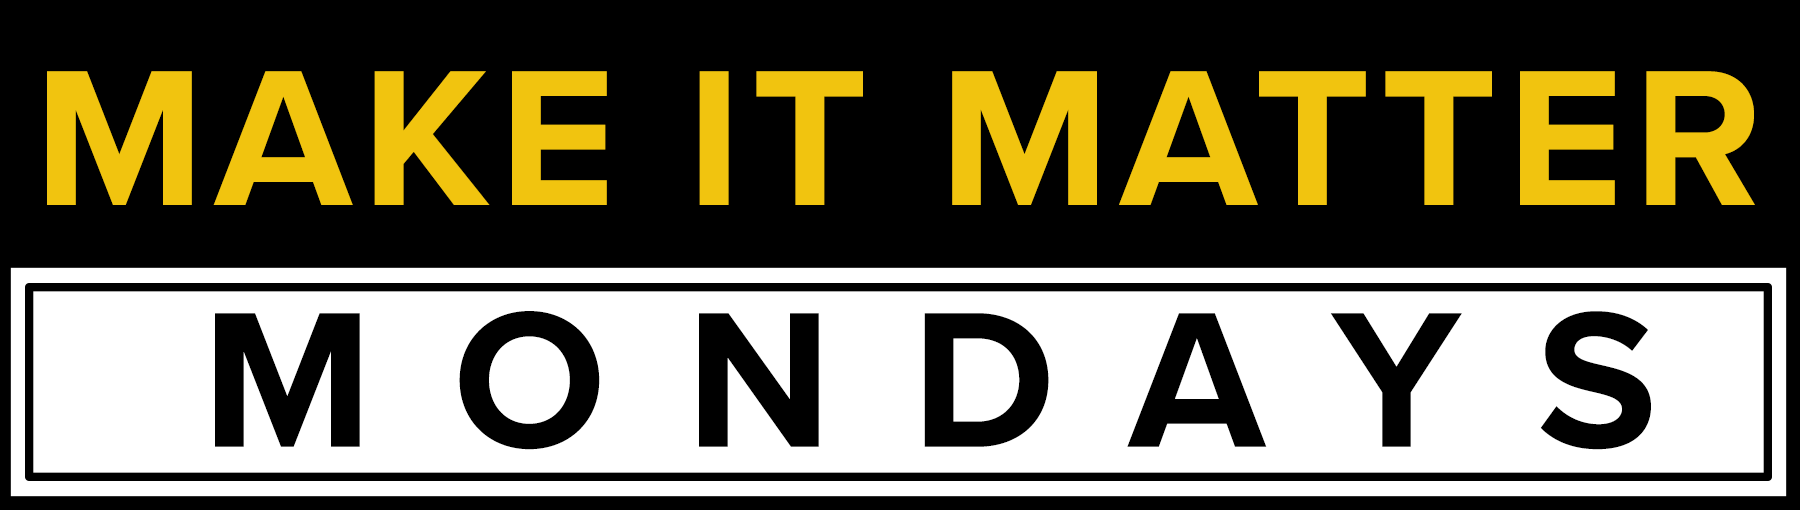 MAKE IT MATTER MONDAYS.png